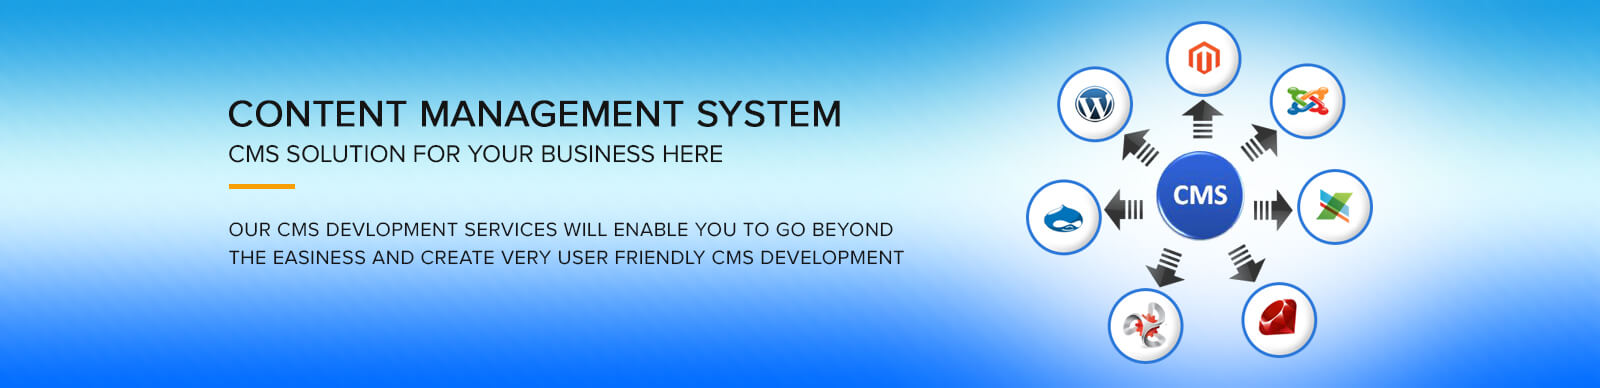 CMS web solutions for your business here